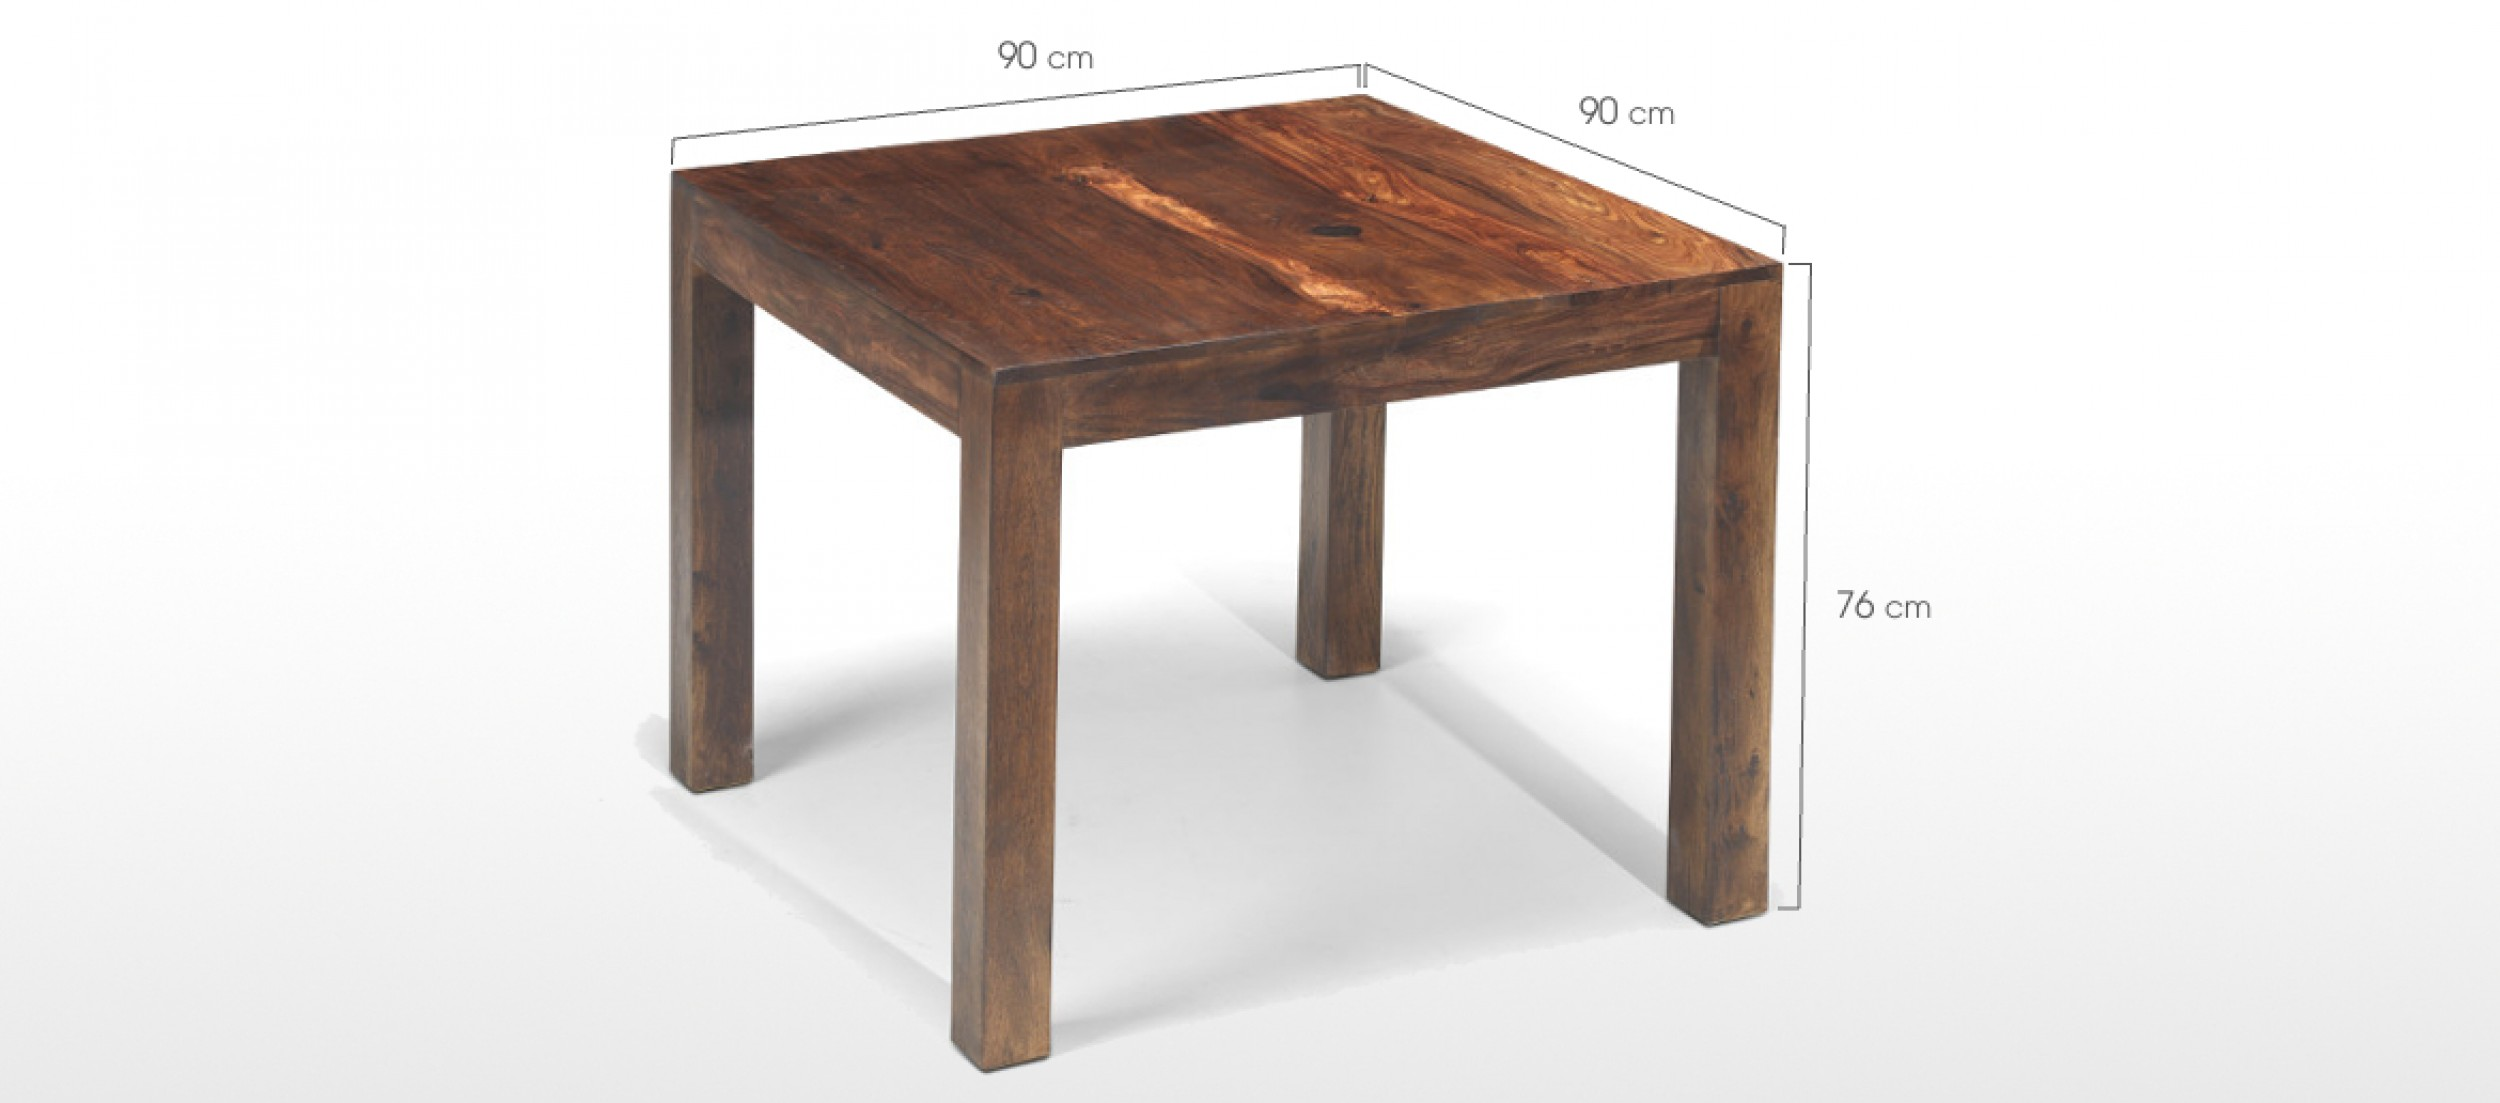 Cube sheesham 90 cm dining table quercus living for Dining table specifications